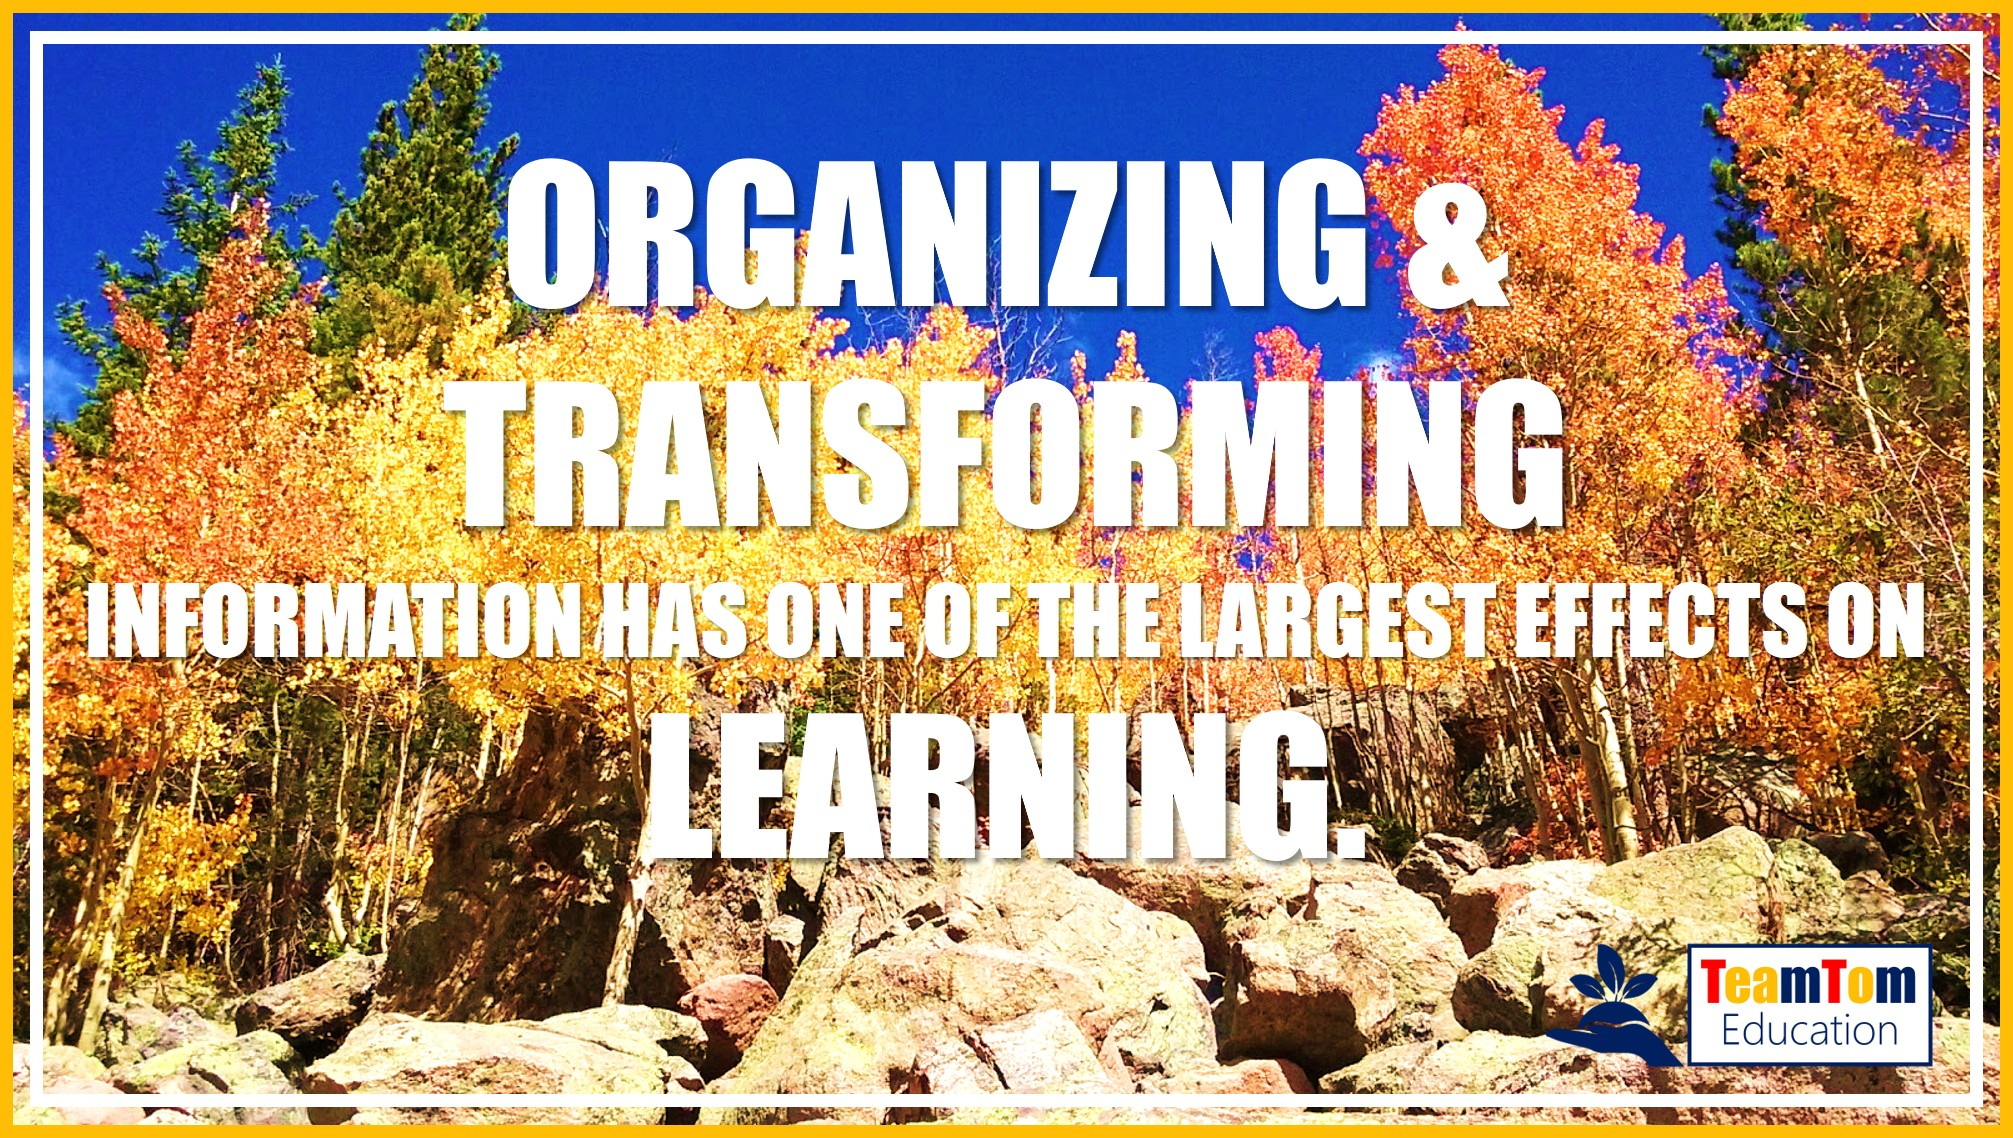 John Hattie's research showed high amounts of learning come from organizing thoughts.